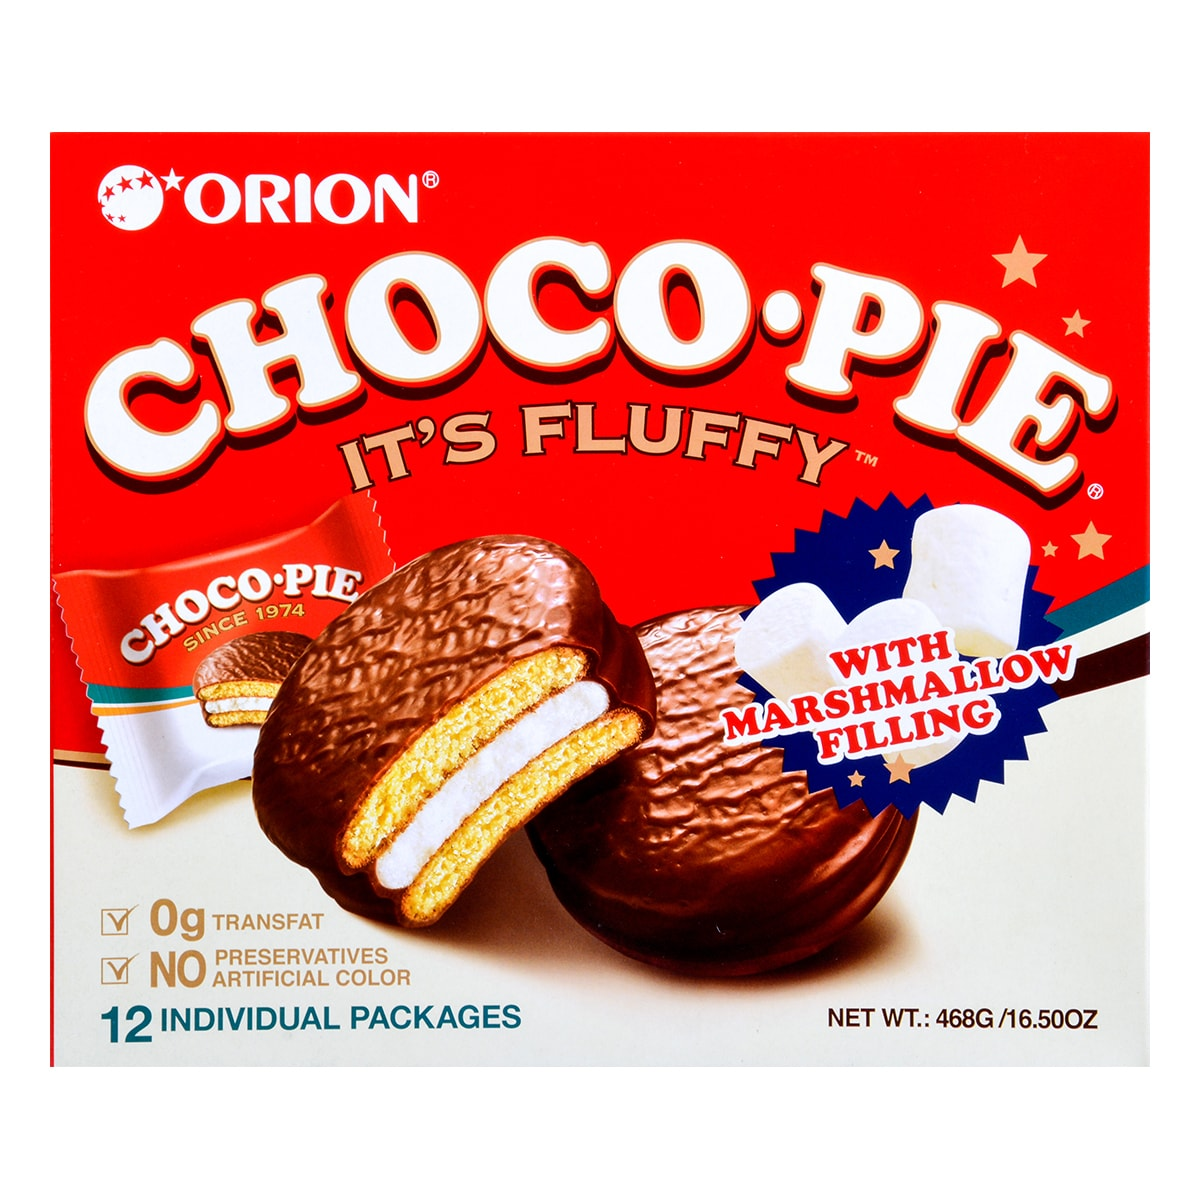 Yamibuy.com:Customer reviews:ORION Choco Pie with Marshmallow Filling 12Packs